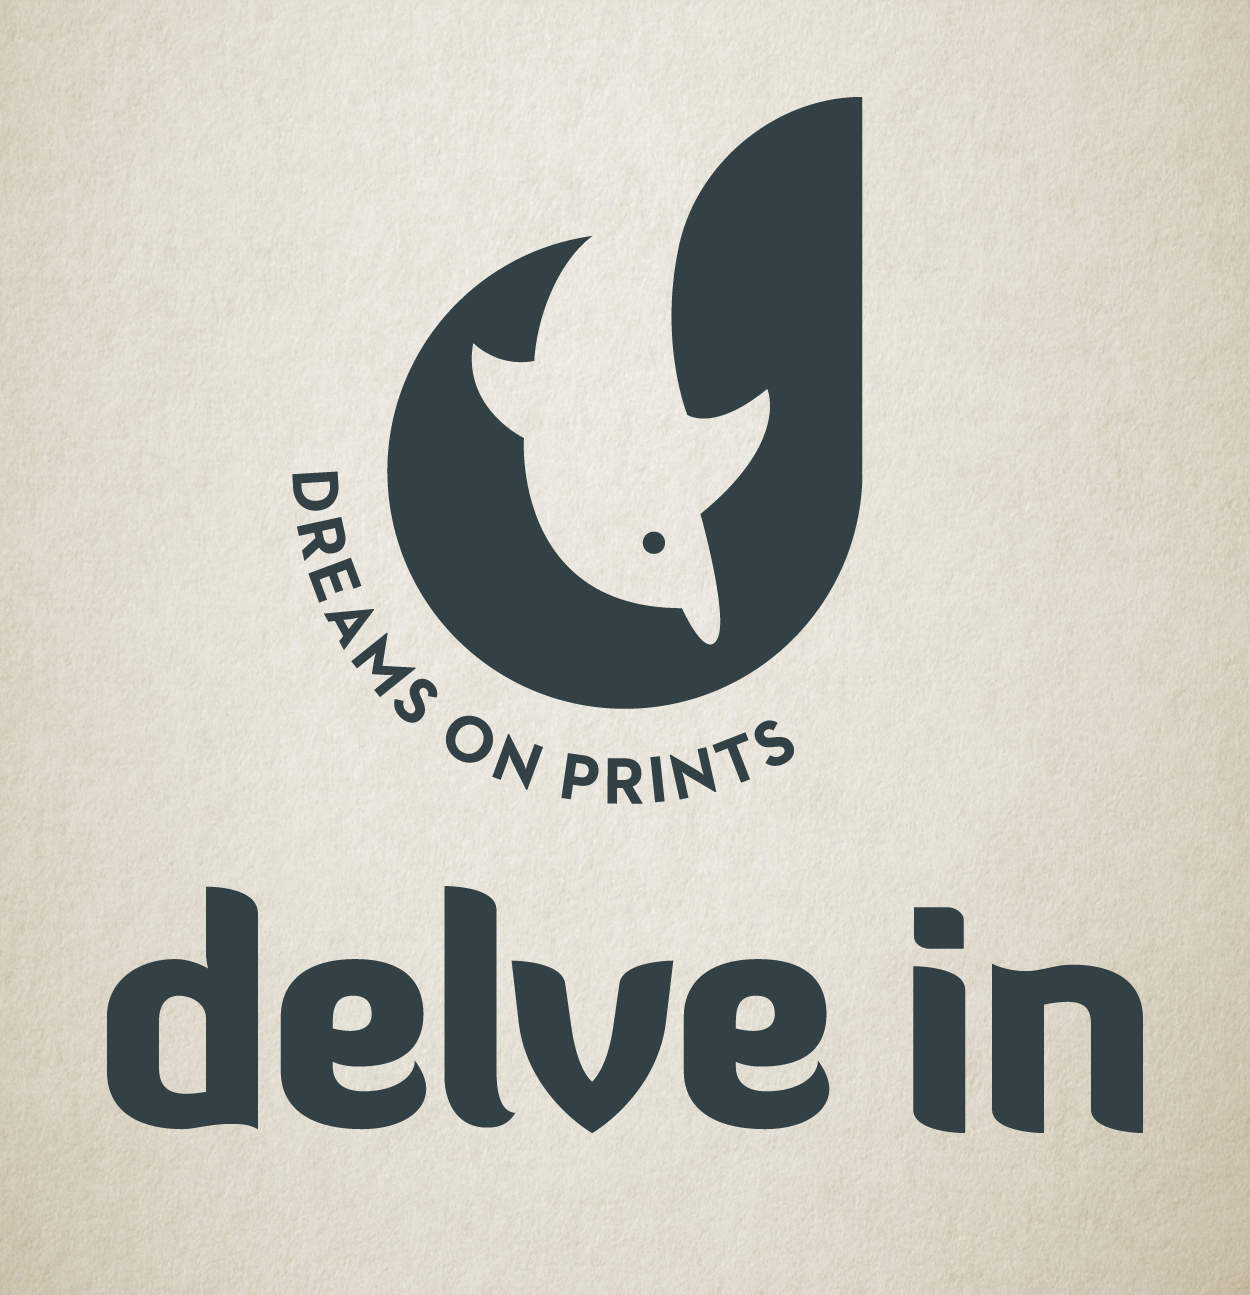 Project Delvein image